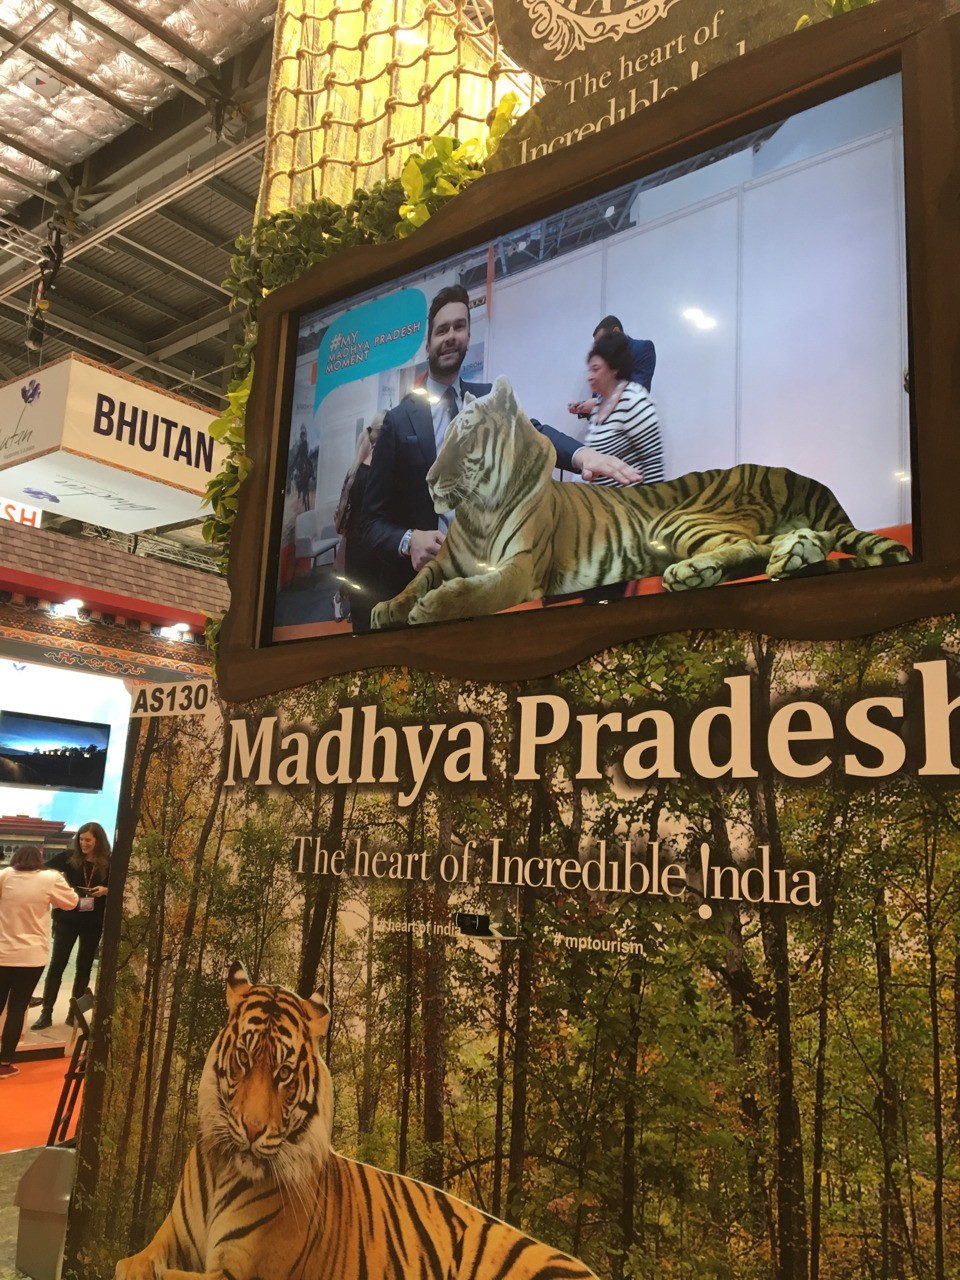 Spending some quality time with a docile tiger at the World Travel Market in London. It remained calm throughout my pitch.